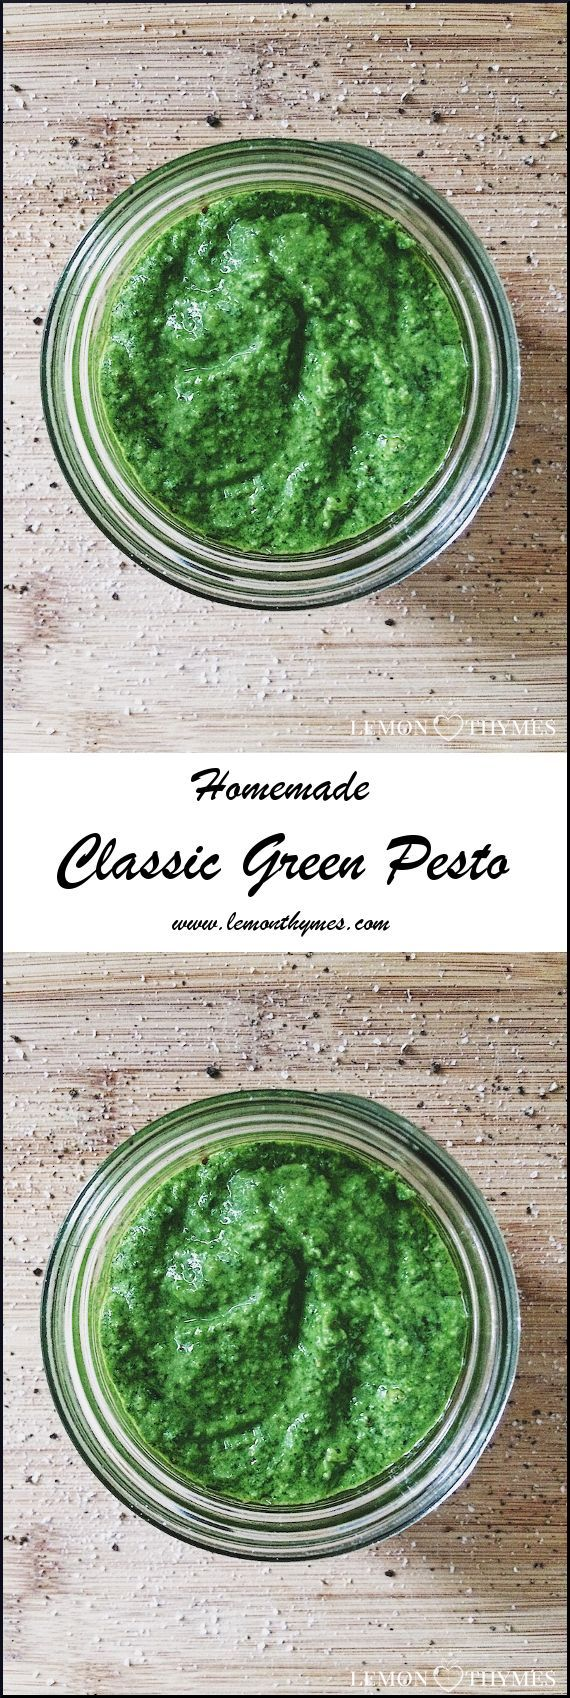 This Classic Green Pesto recipe only takes about 10 minutes to make and requires 7 simple ingredients: basil, lemon, garlic, olive oil, pine nuts, Parmesan Reggiano, and sea salt. SOOO GOOD | lemonthymes.com